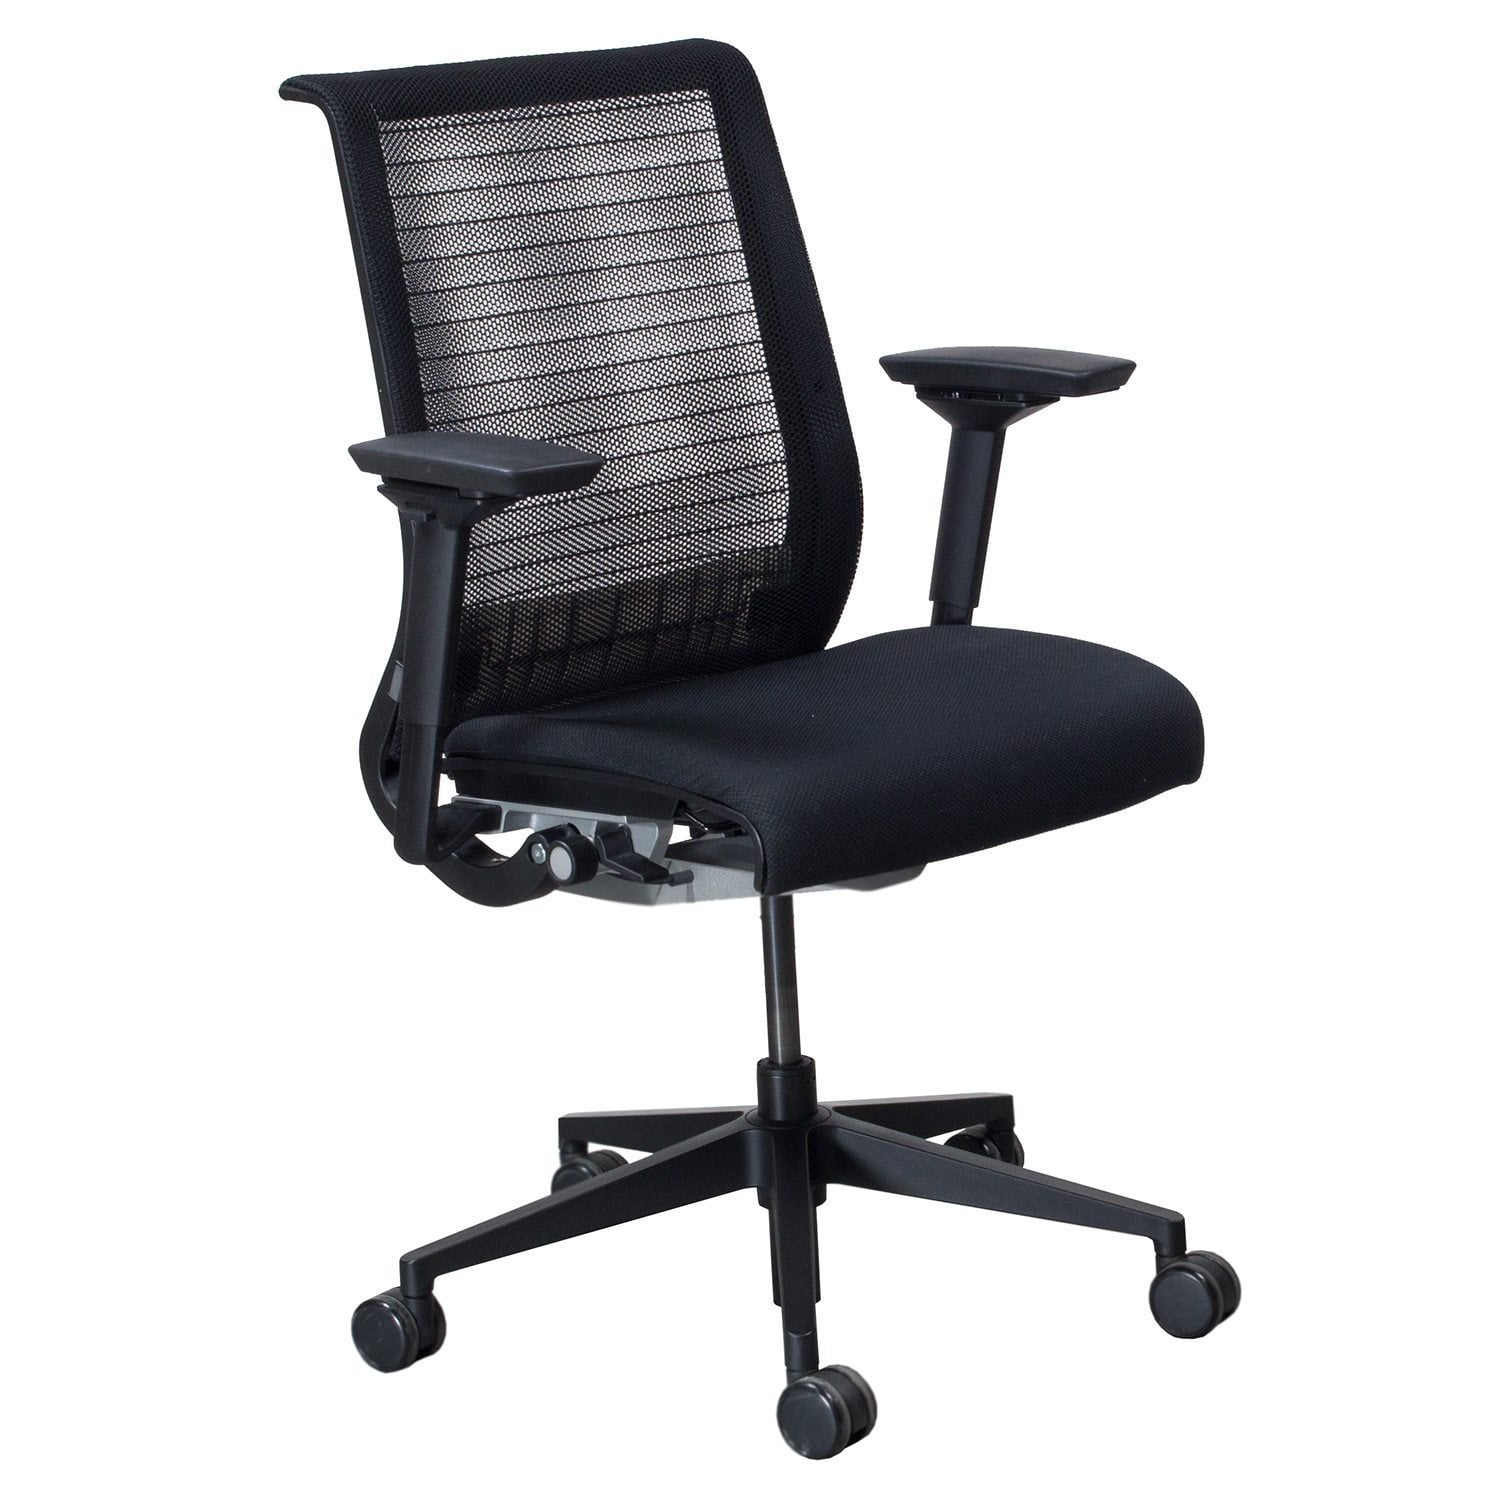 Steelcase Chairs Steelcase Think Used Task Chair Black Mesh National